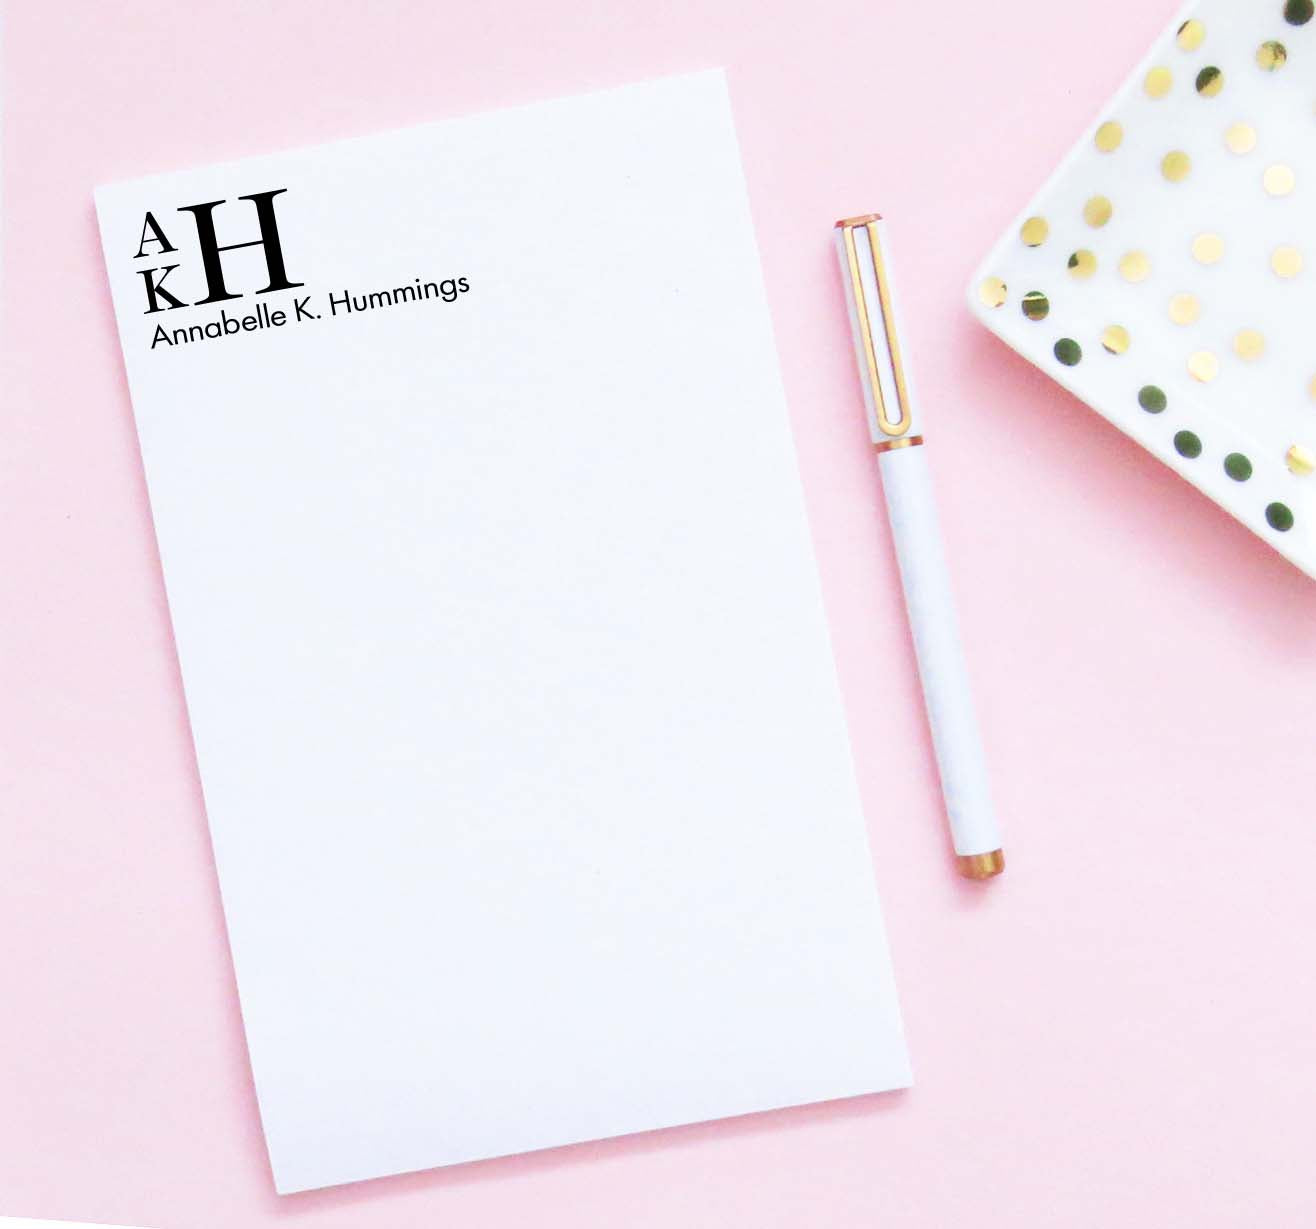 NP216 3 letter monogrammed notepads personalized for adults men women classic